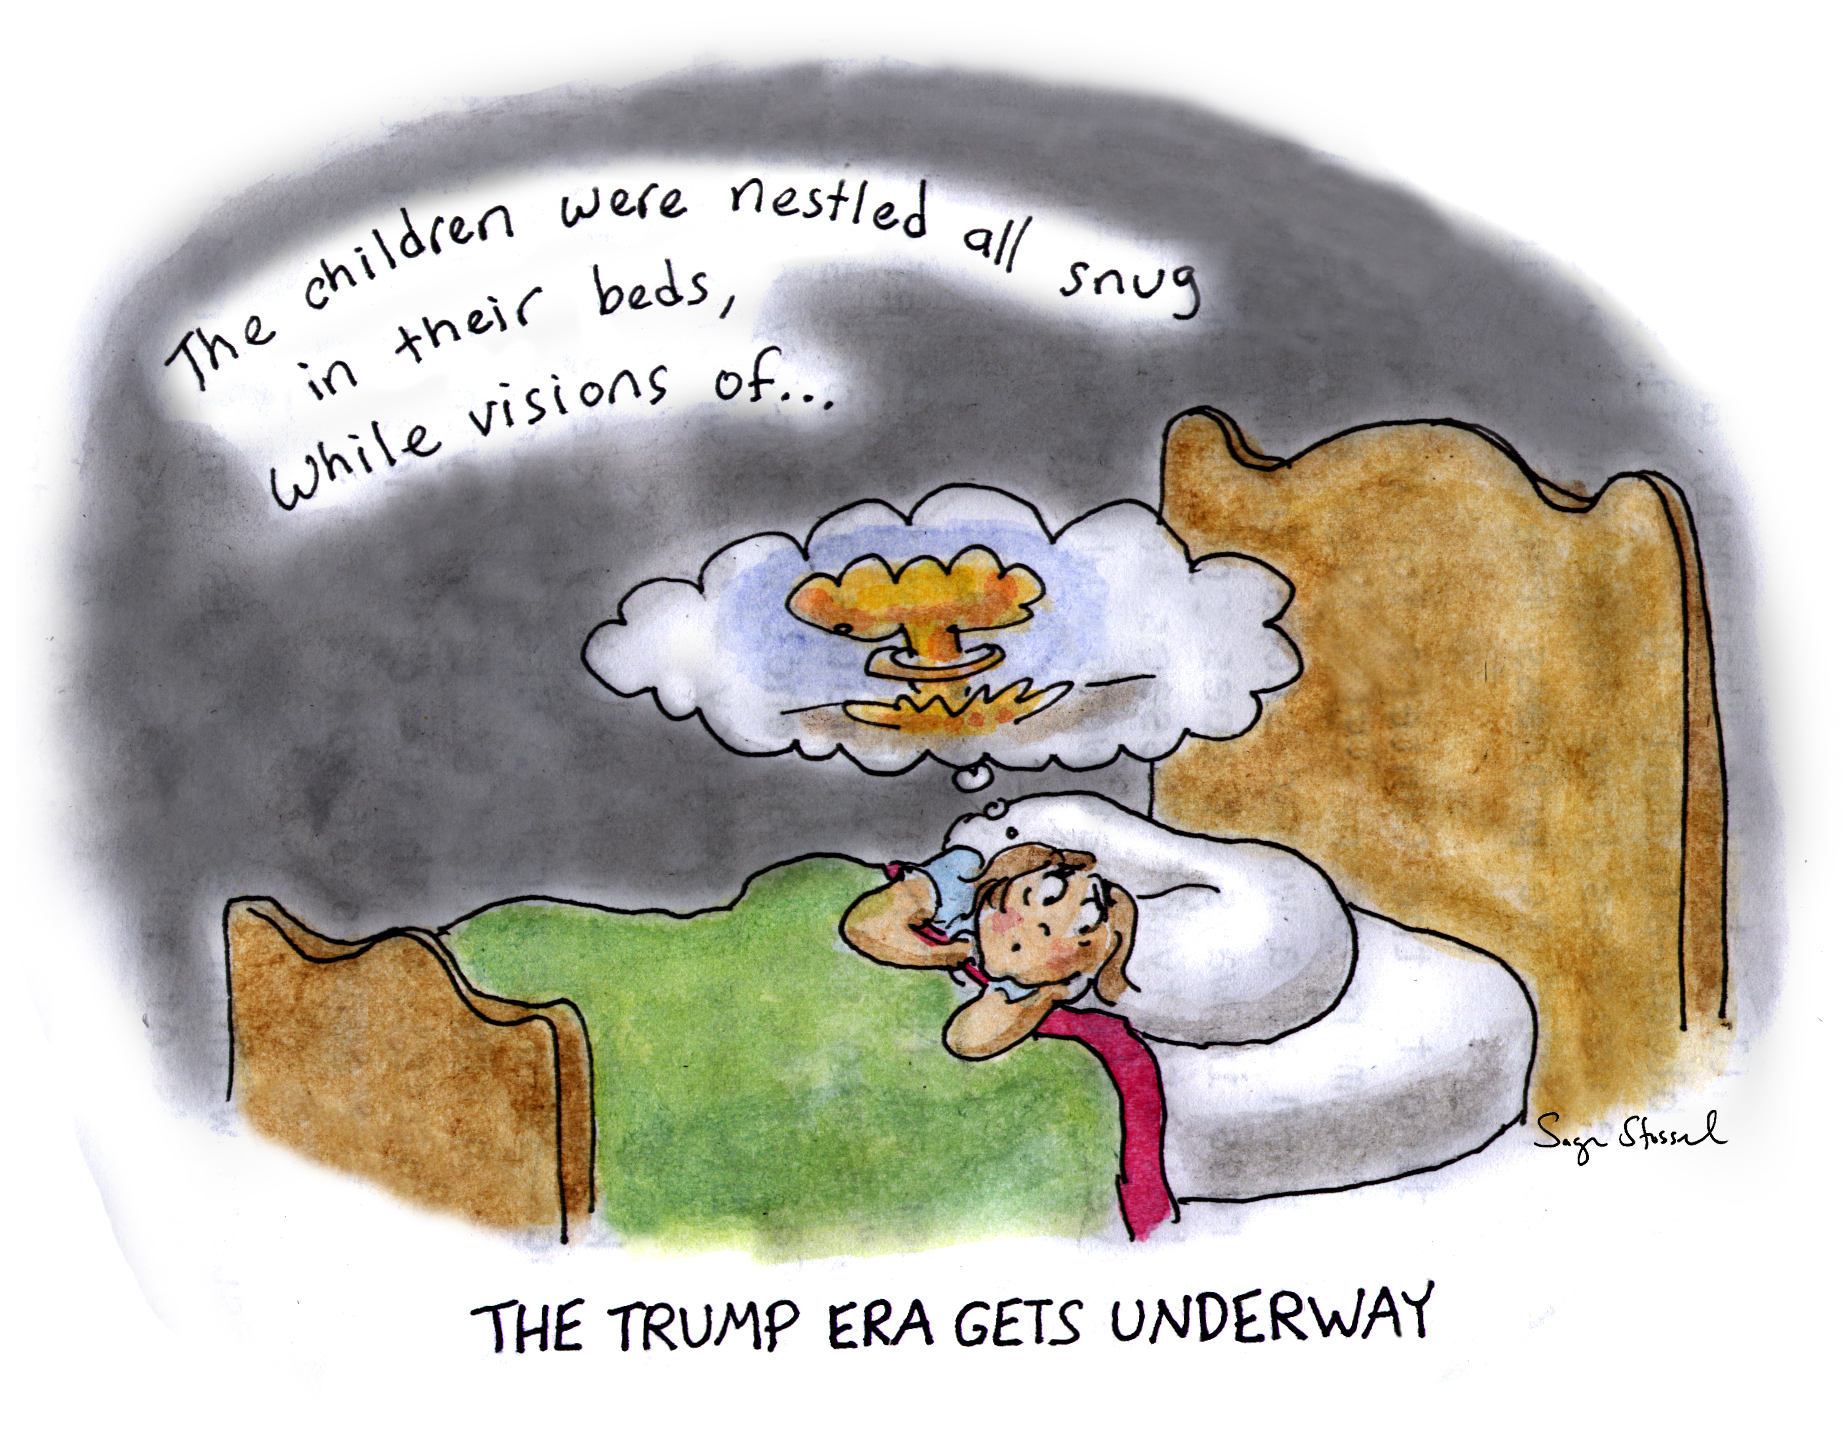 trump, nuclear arms race, tweet, proliferation, putin, christmas, holidays, president, cartoon